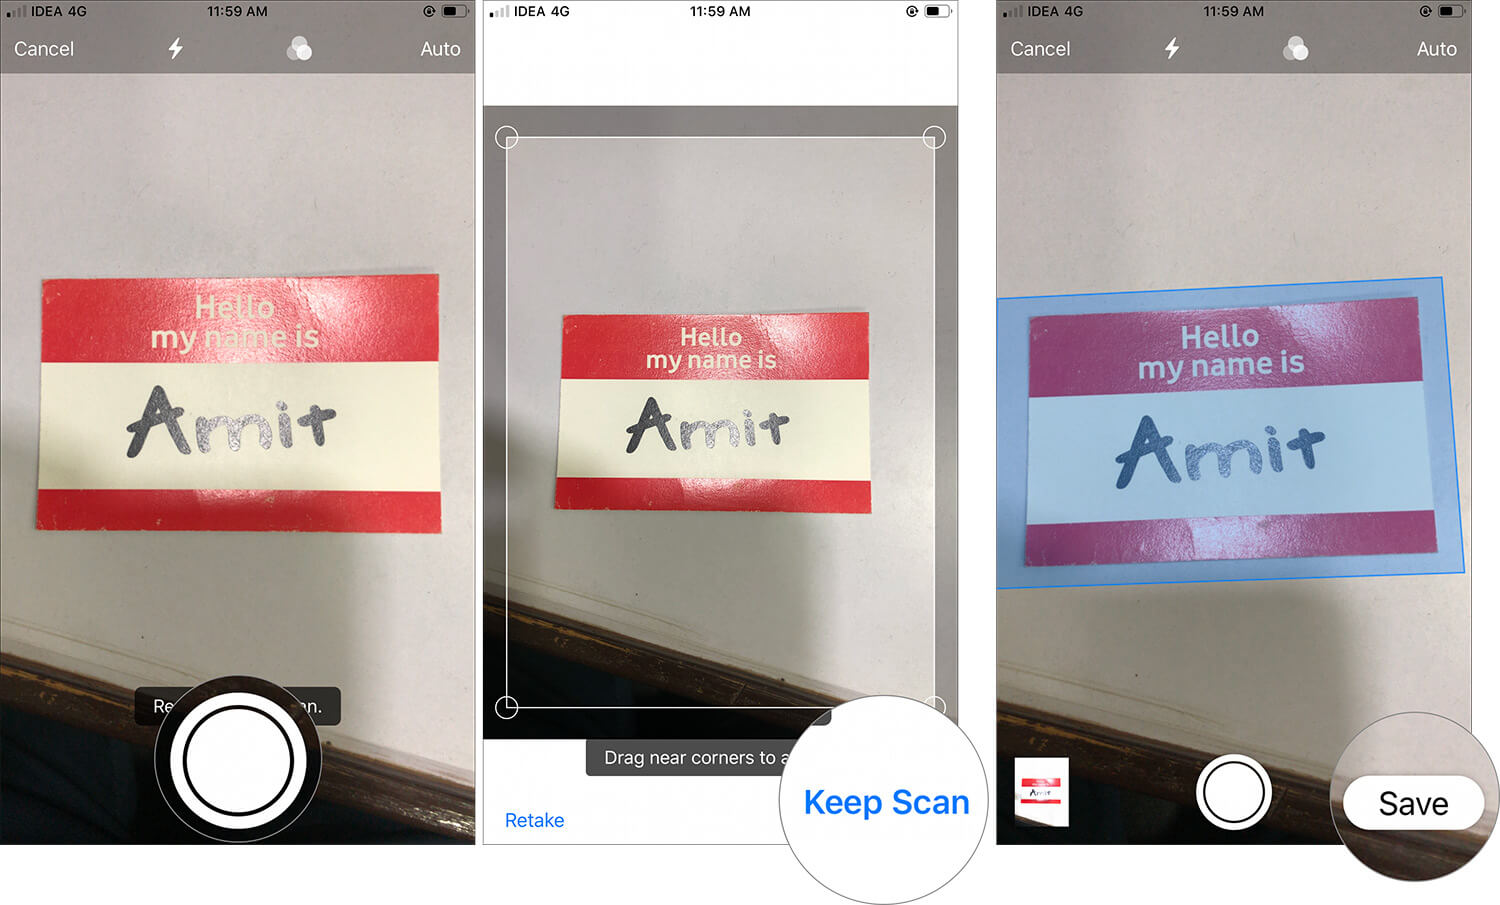 Scan a Document with iOS 13 Files App on iPhone